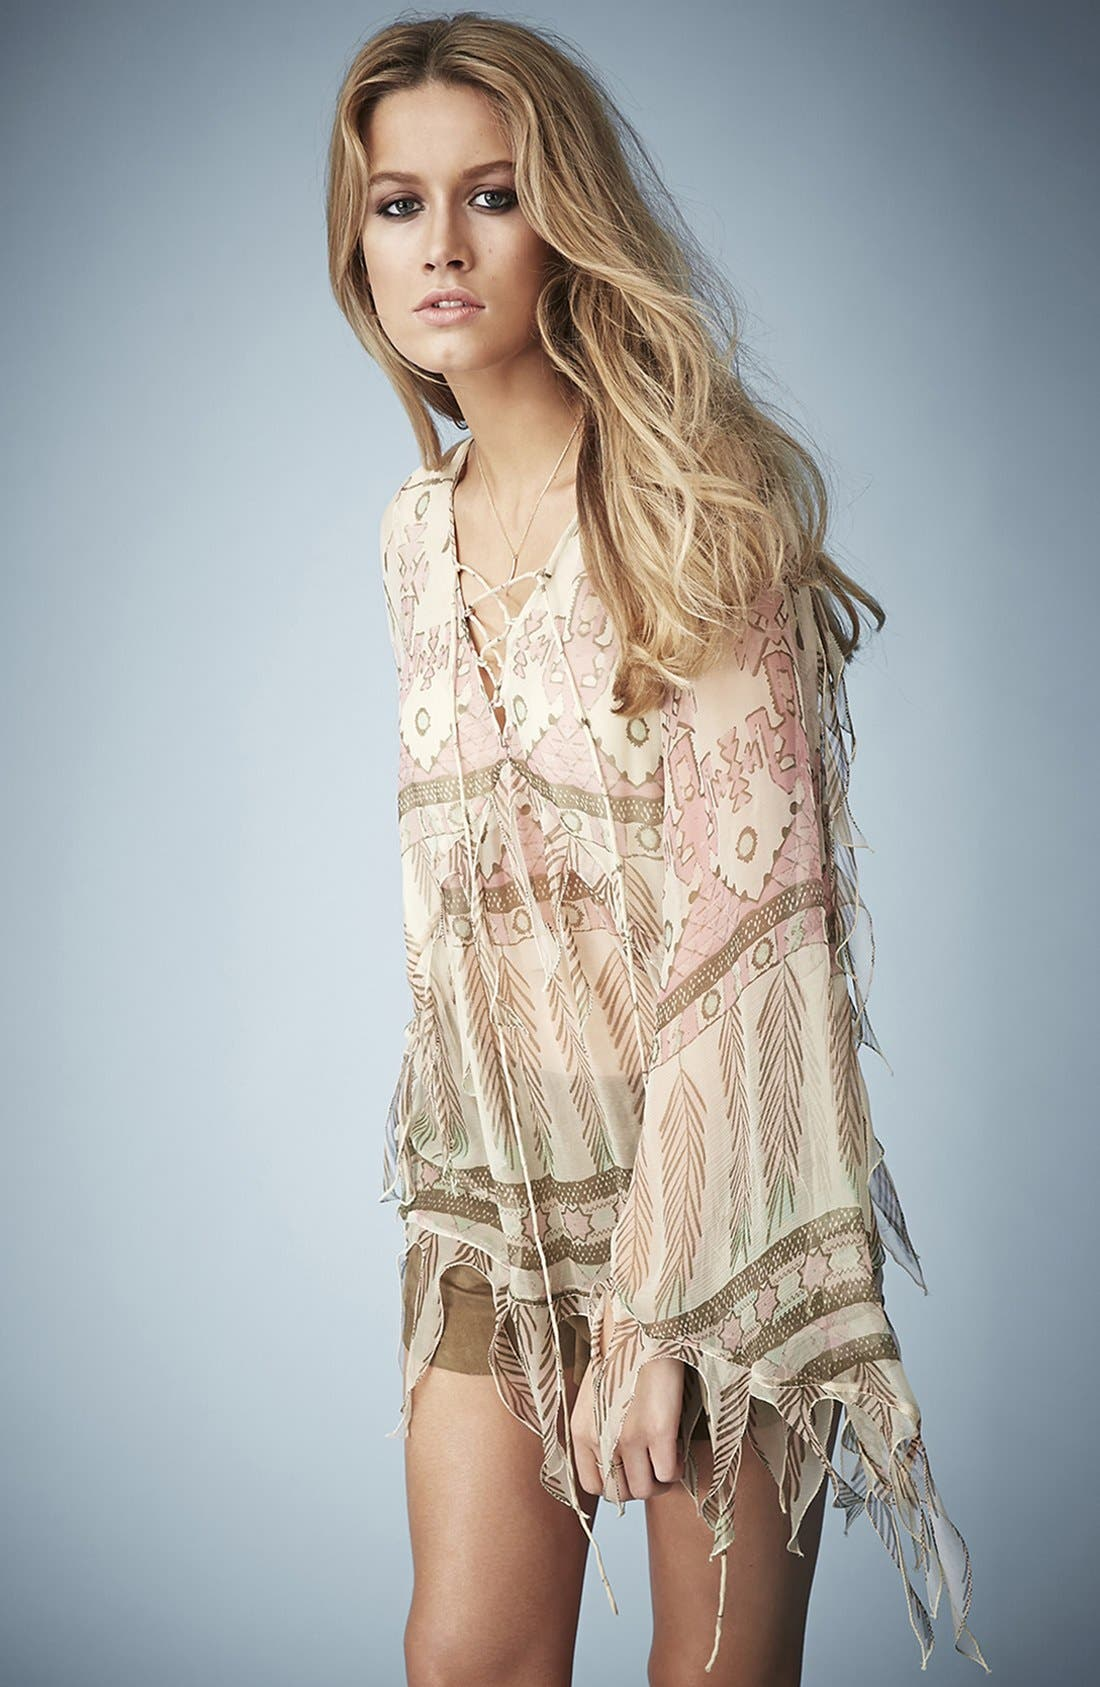 Alternate Image 1 Selected - Kate Moss for Topshop Tassel Feather Print Blouse